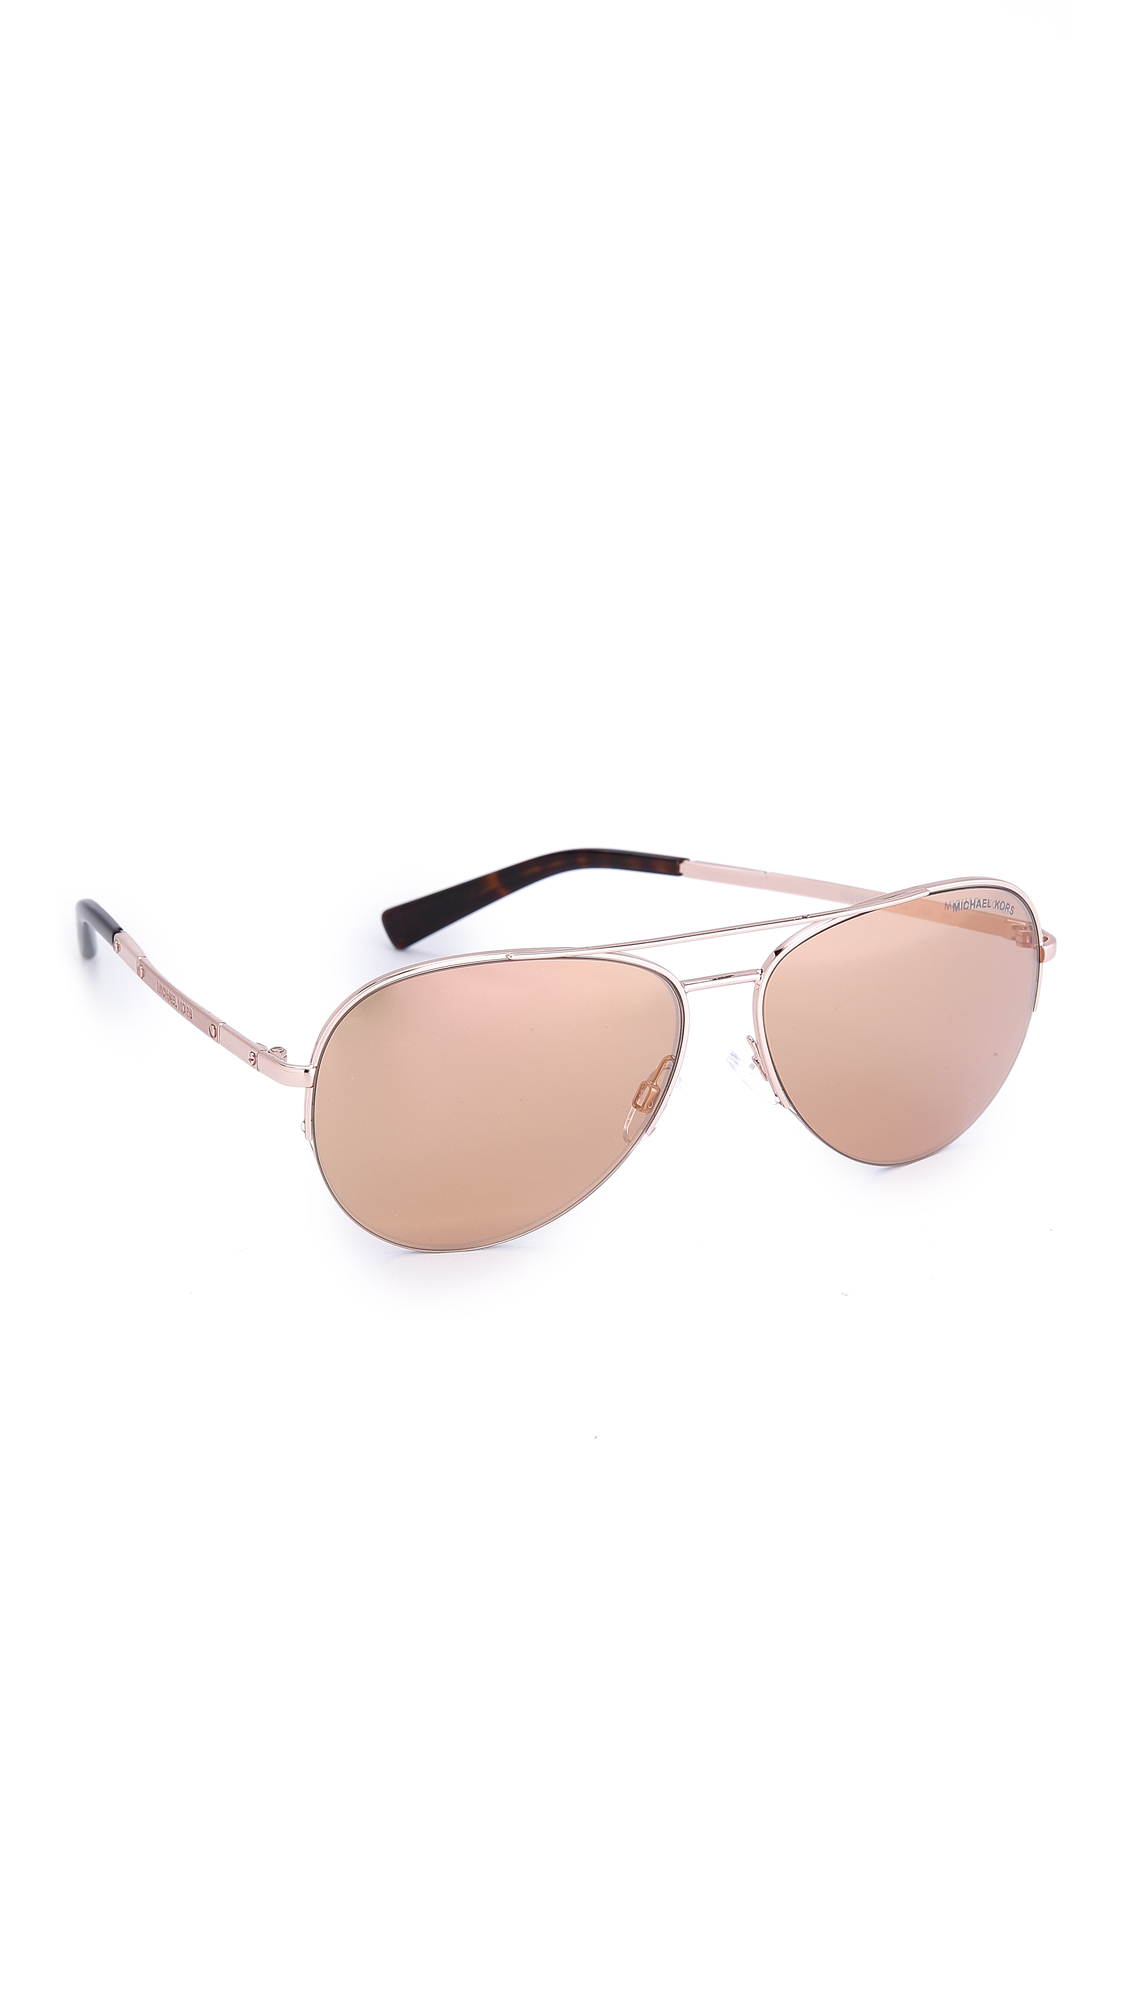 1f9a143d6a Michael Kors Gramercy Sunglasses - Rose Gold rose Gold Flash in ...